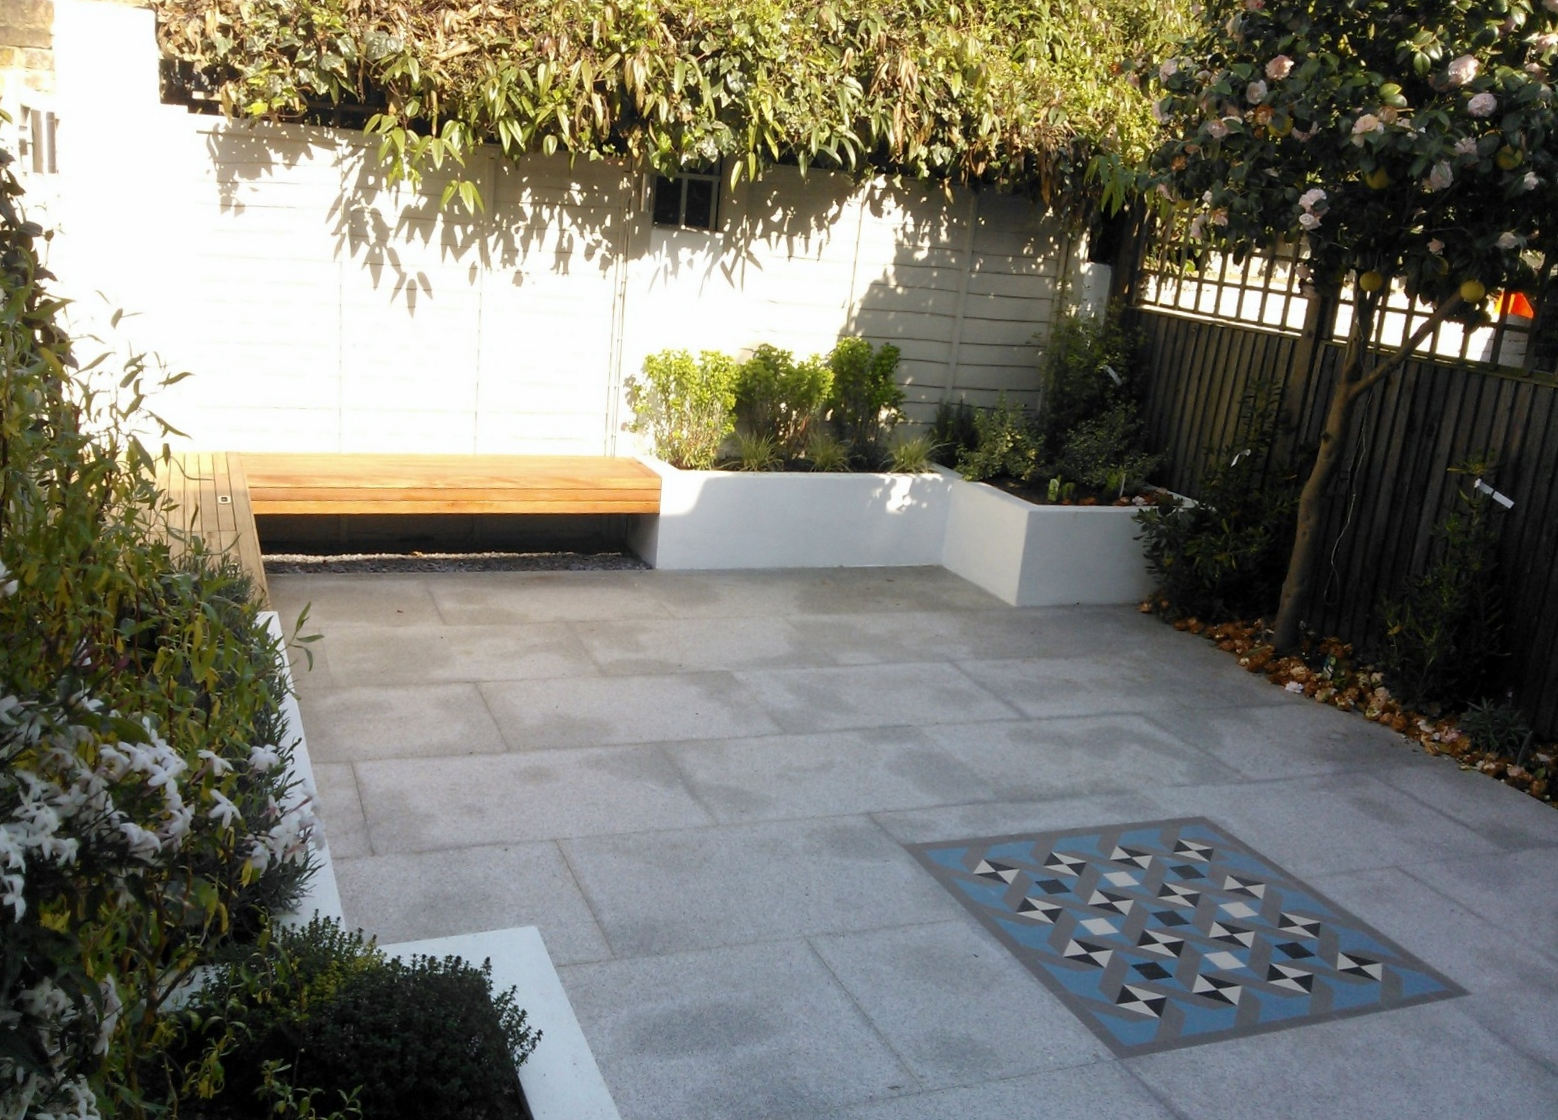 Modern London Garden Design Painted Fence Granite Paving Hardwood Bench Raised Painted beds architectural Planting West London